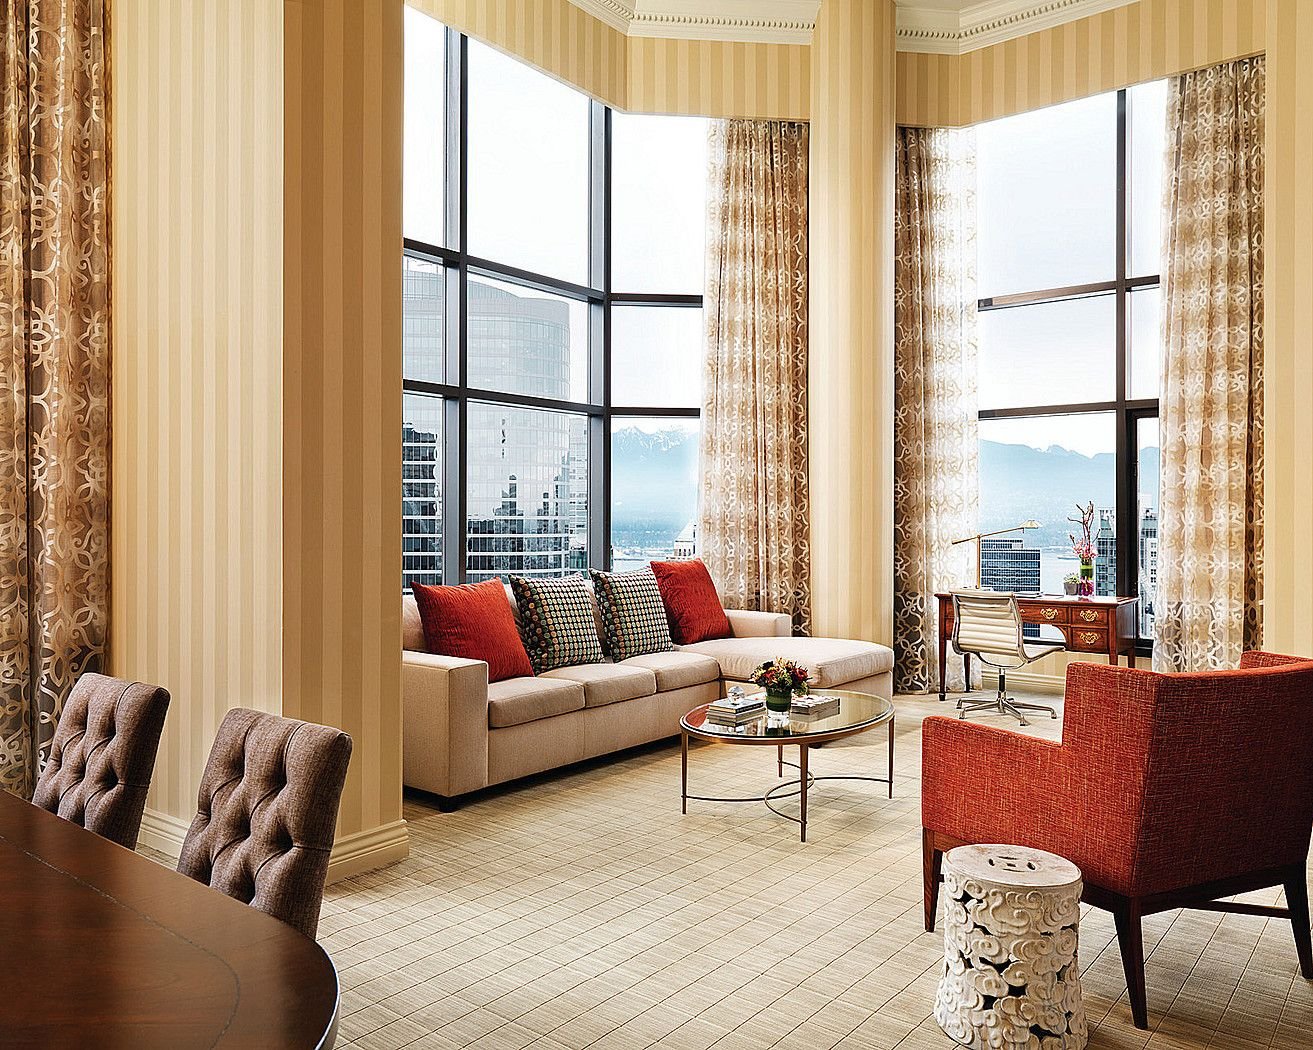 Elegantly Furnished With Modern Accents Experience Intimate Luxurious And Vibrant Palettes Of Blue Wit Luxury Hotel Room Elegant Interior Design Luxury Hotel